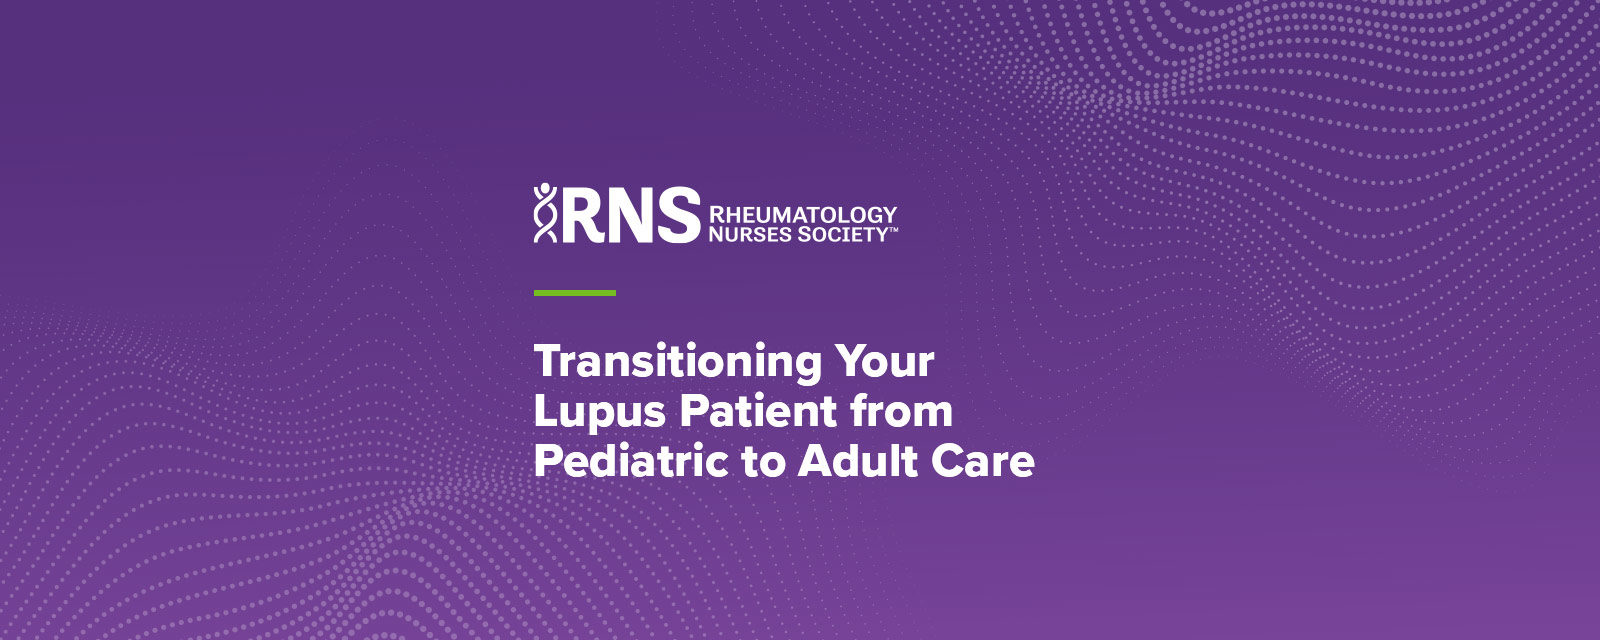 Transitioning Your Lupus Patient from Pediatric to Adult Care